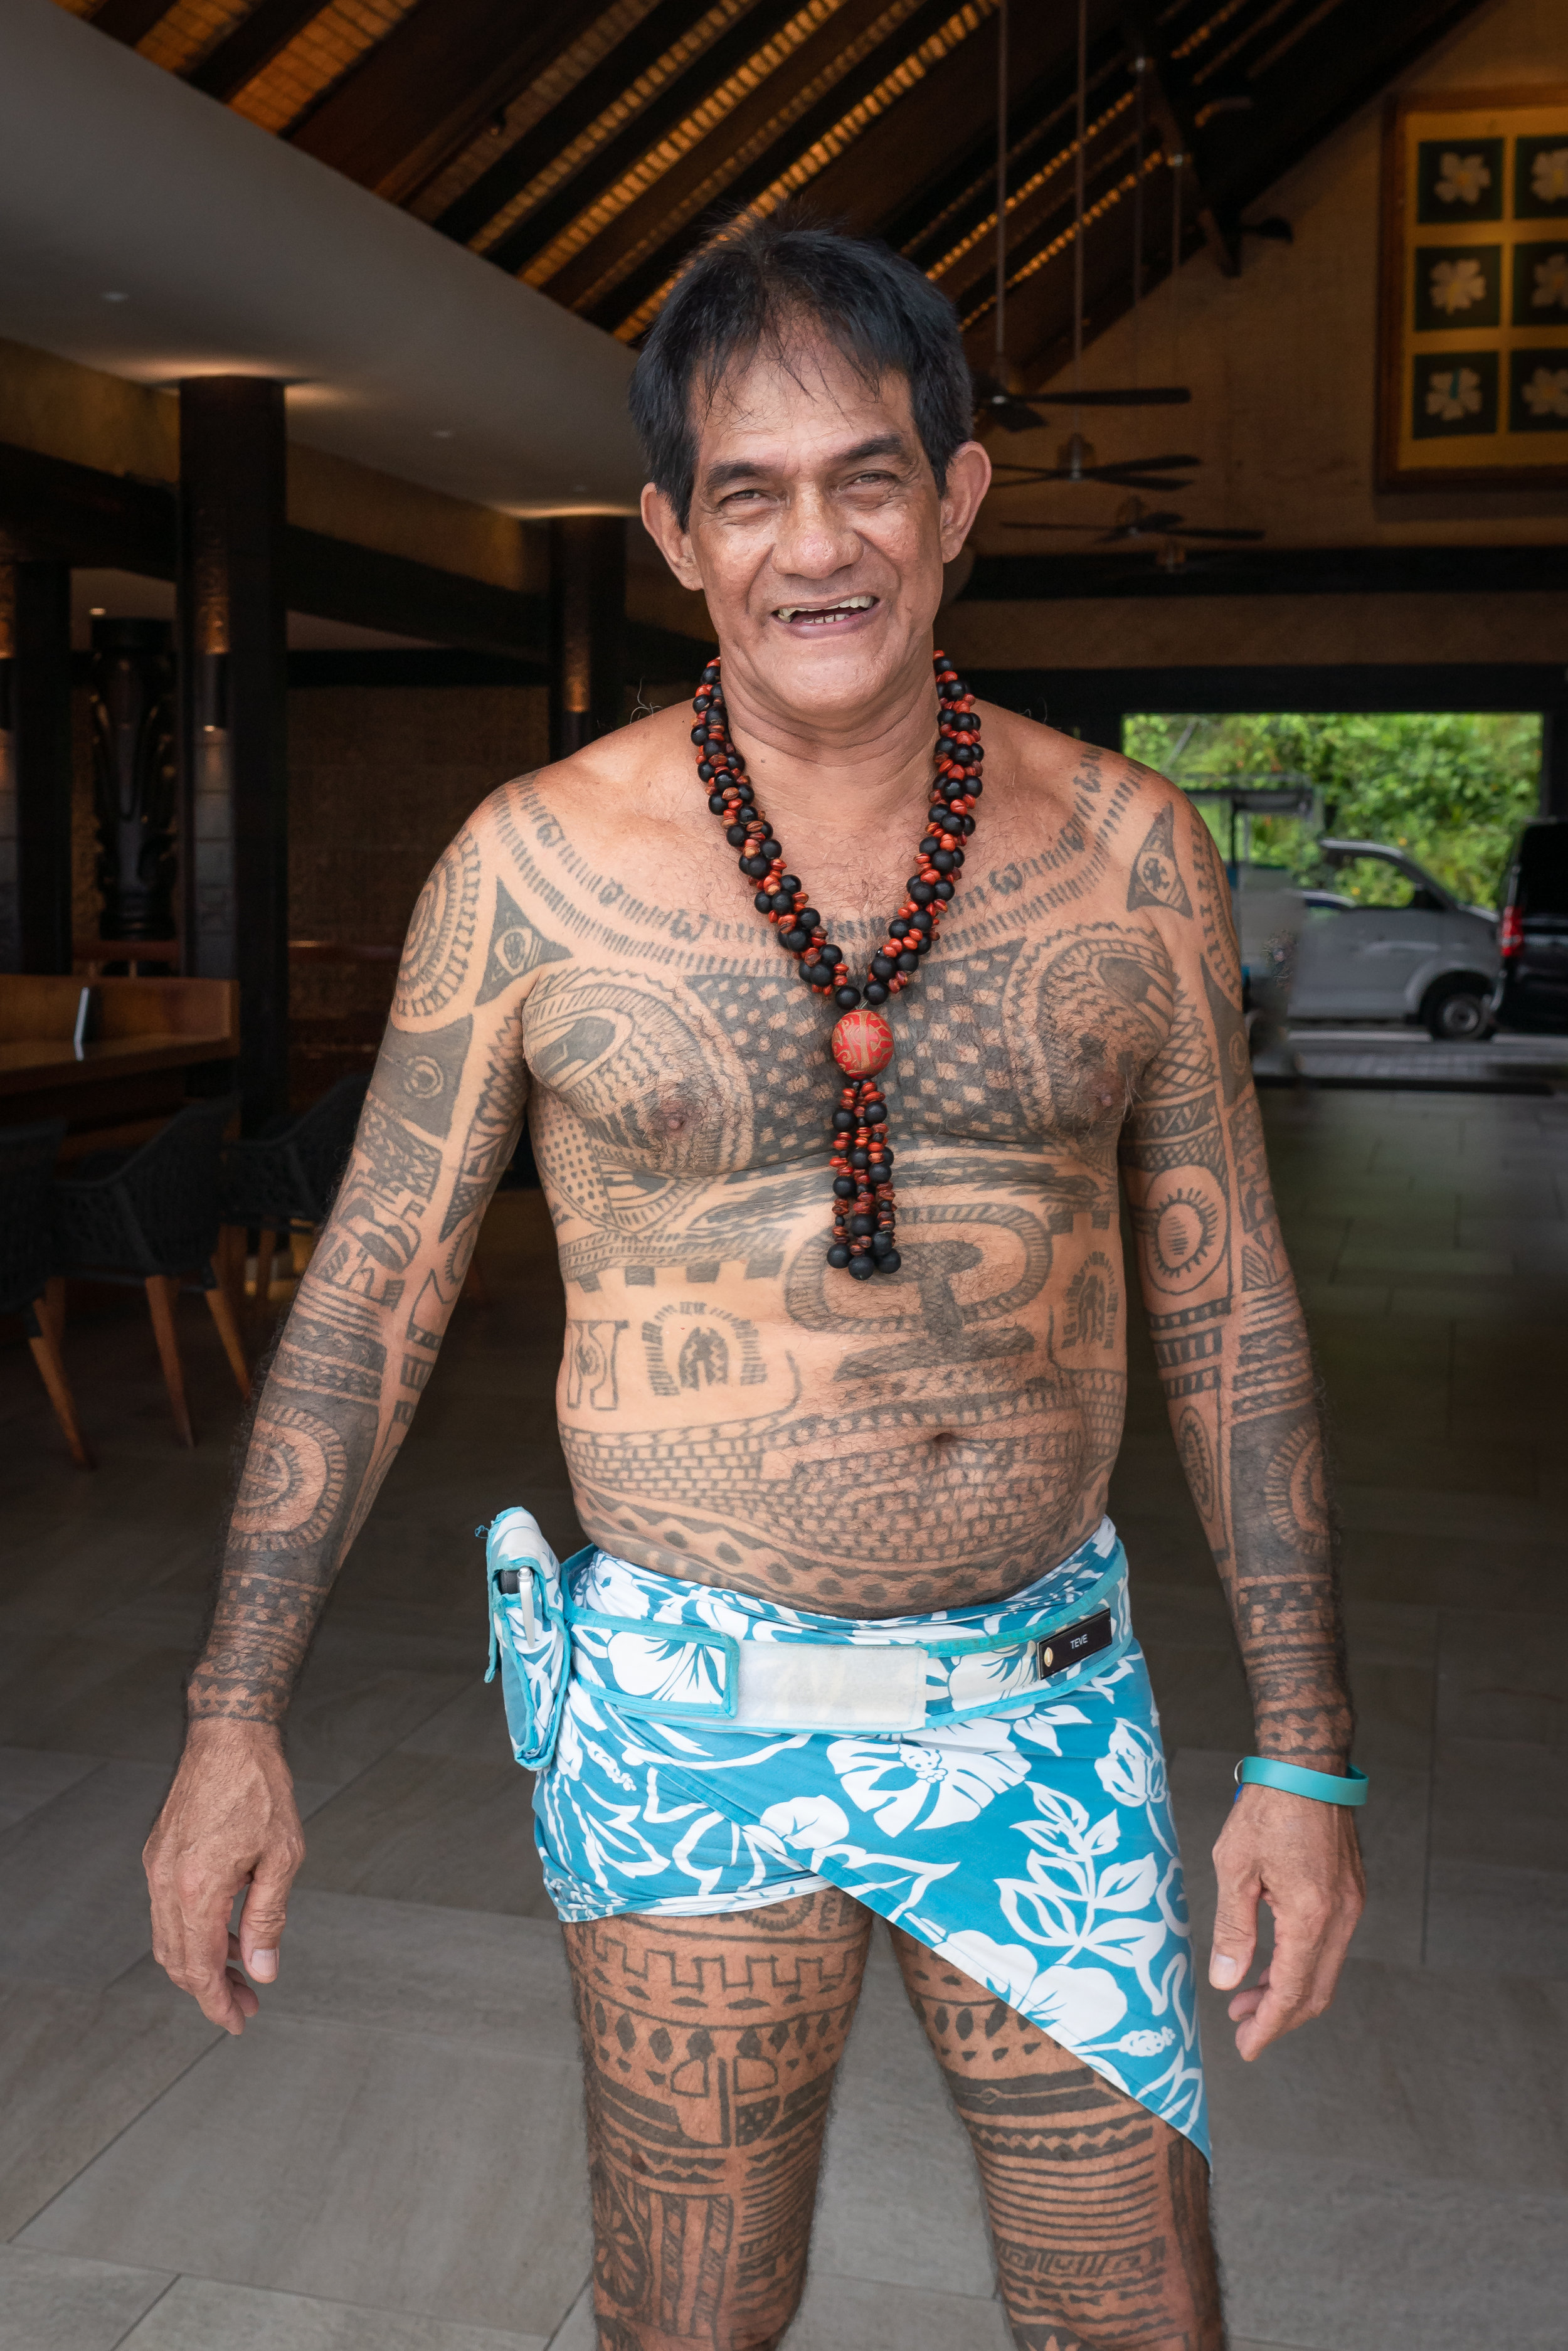 Meet Neve, who made his sarong with a built in cell phone holder.  He also said he had all his tattoos done in one sitting. Wow.